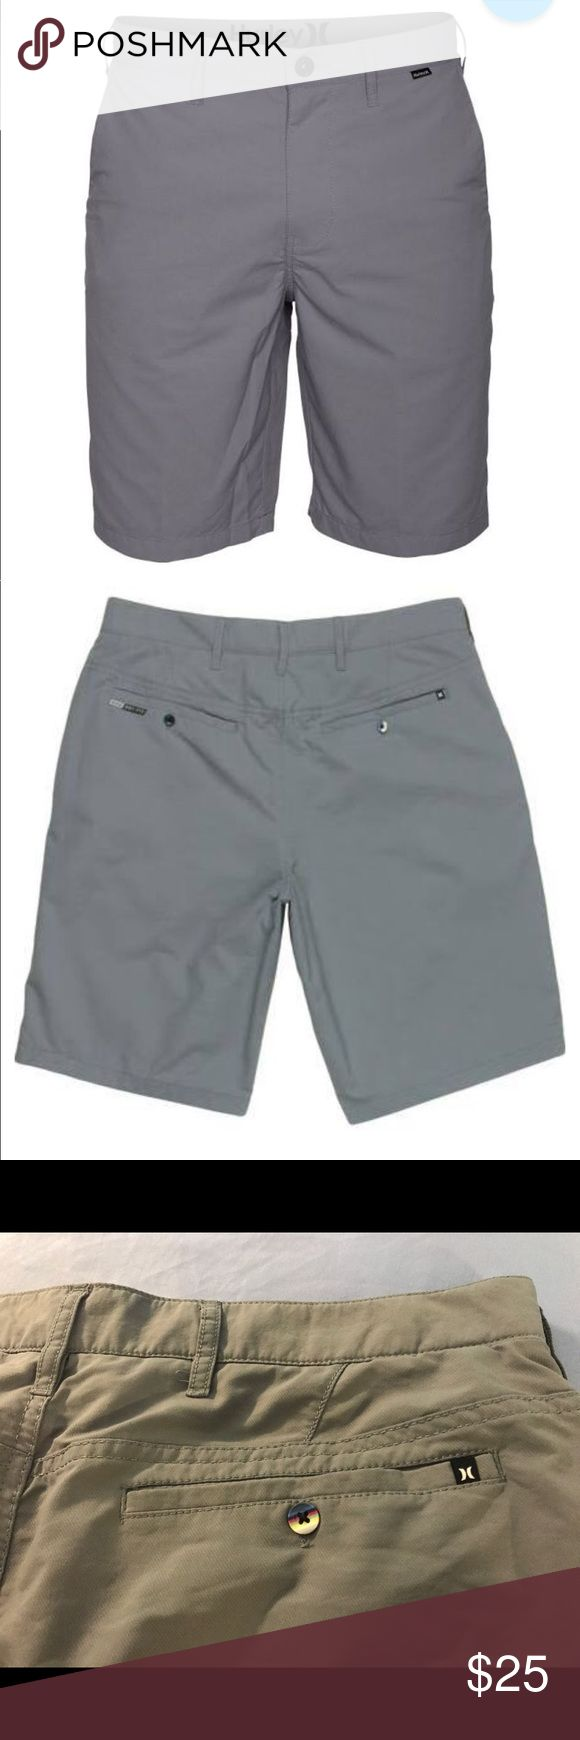 Hurley Men's Dri-FIT Chino Shorts Hurley Men's Dri-FIT Chino Shorts, Size: 32 in great condition** Lighting may vary with coloring** Gray Shorts Hurley Shorts Hybrids